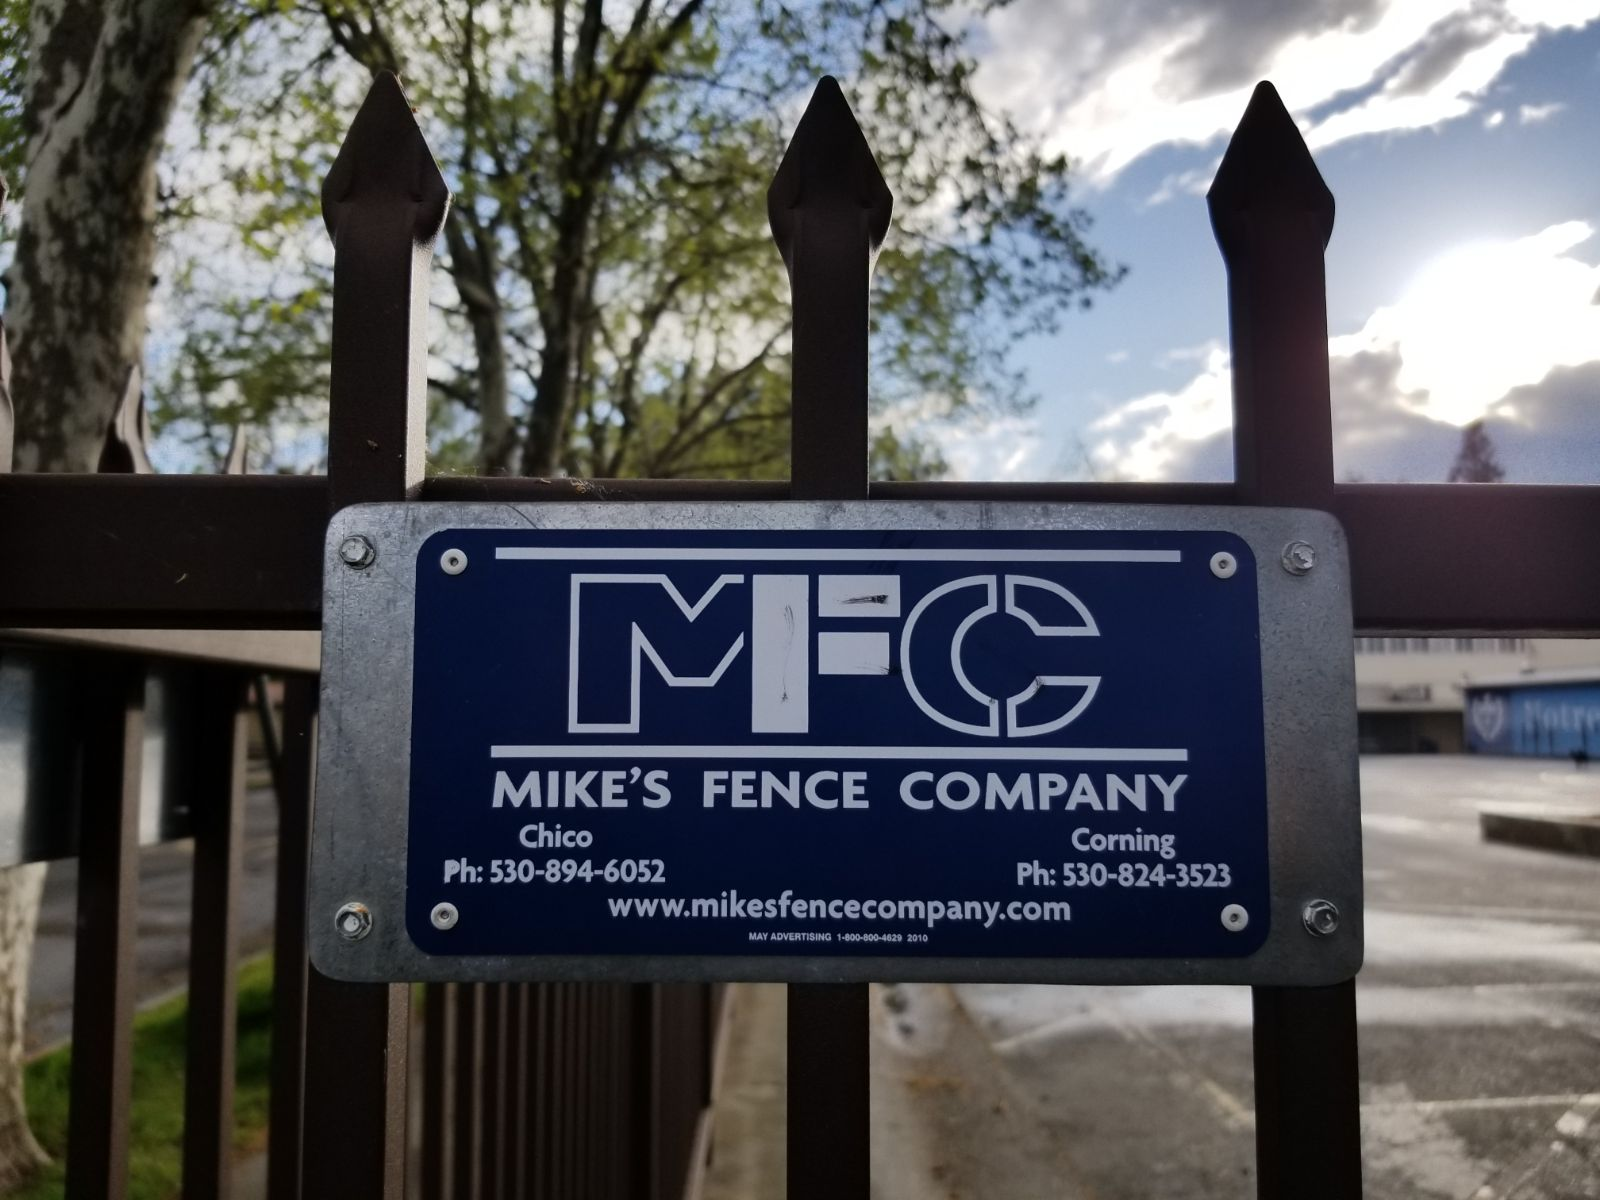 Permanent Fence Builders - Mikes Fence Company